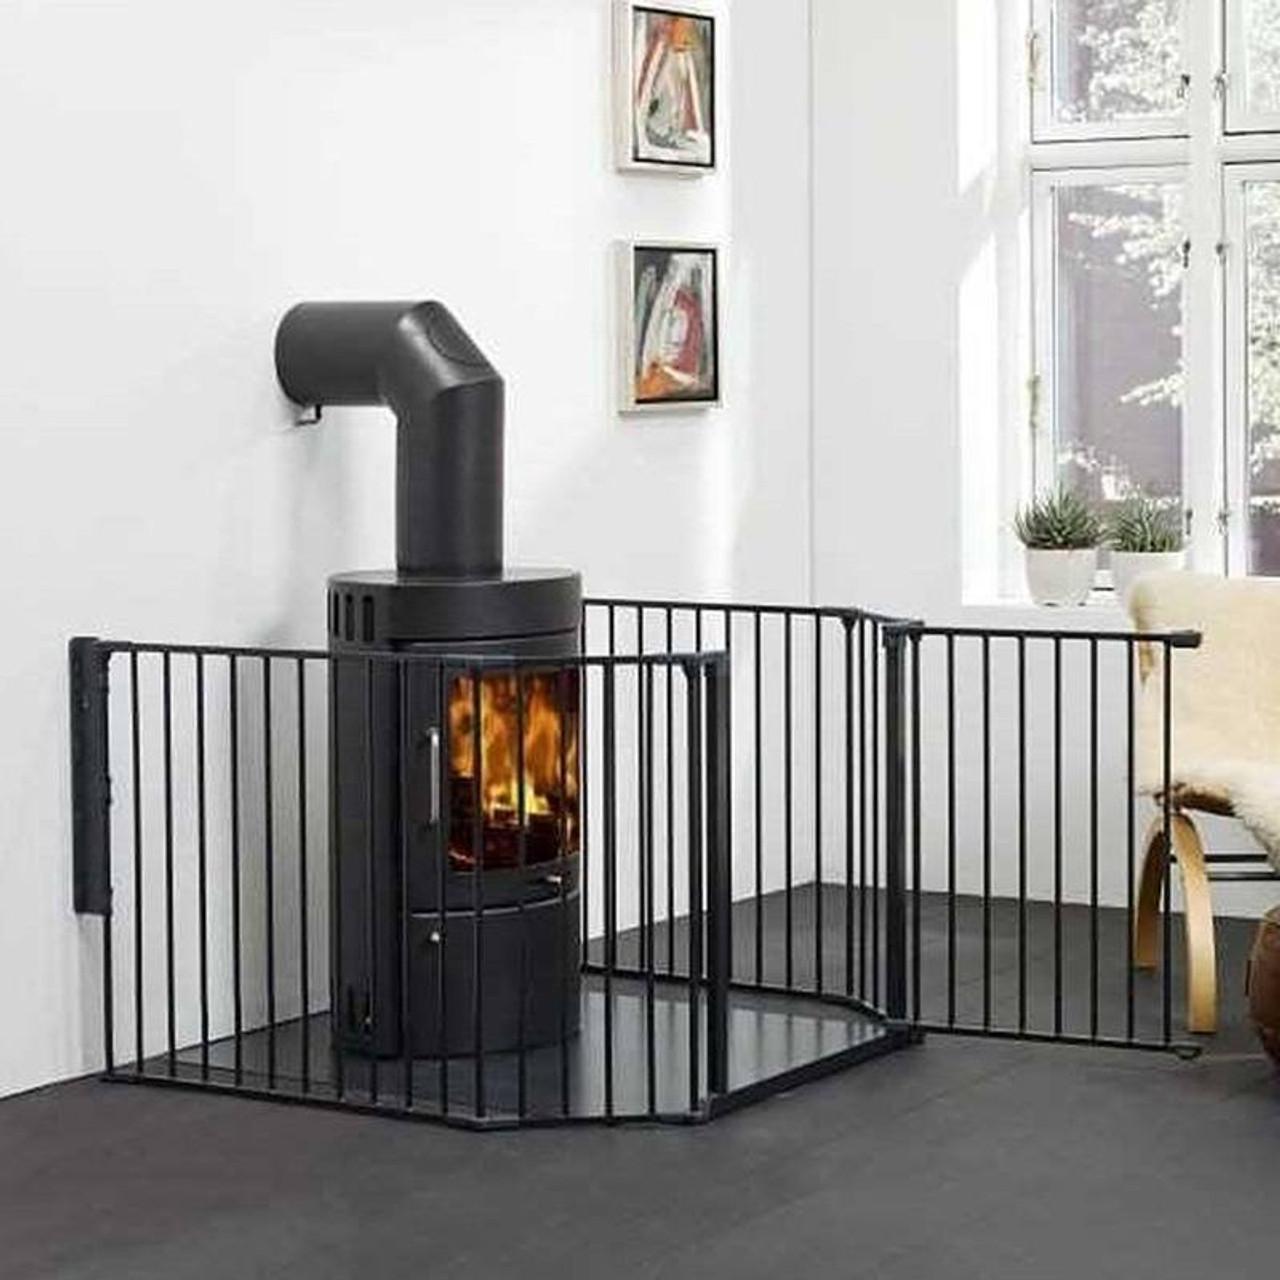 NEW BABYDAN BLACK METAL XL FLEXI FIT HEARTH//CONFIGURE GATE COVERS 90 TO 278 CM